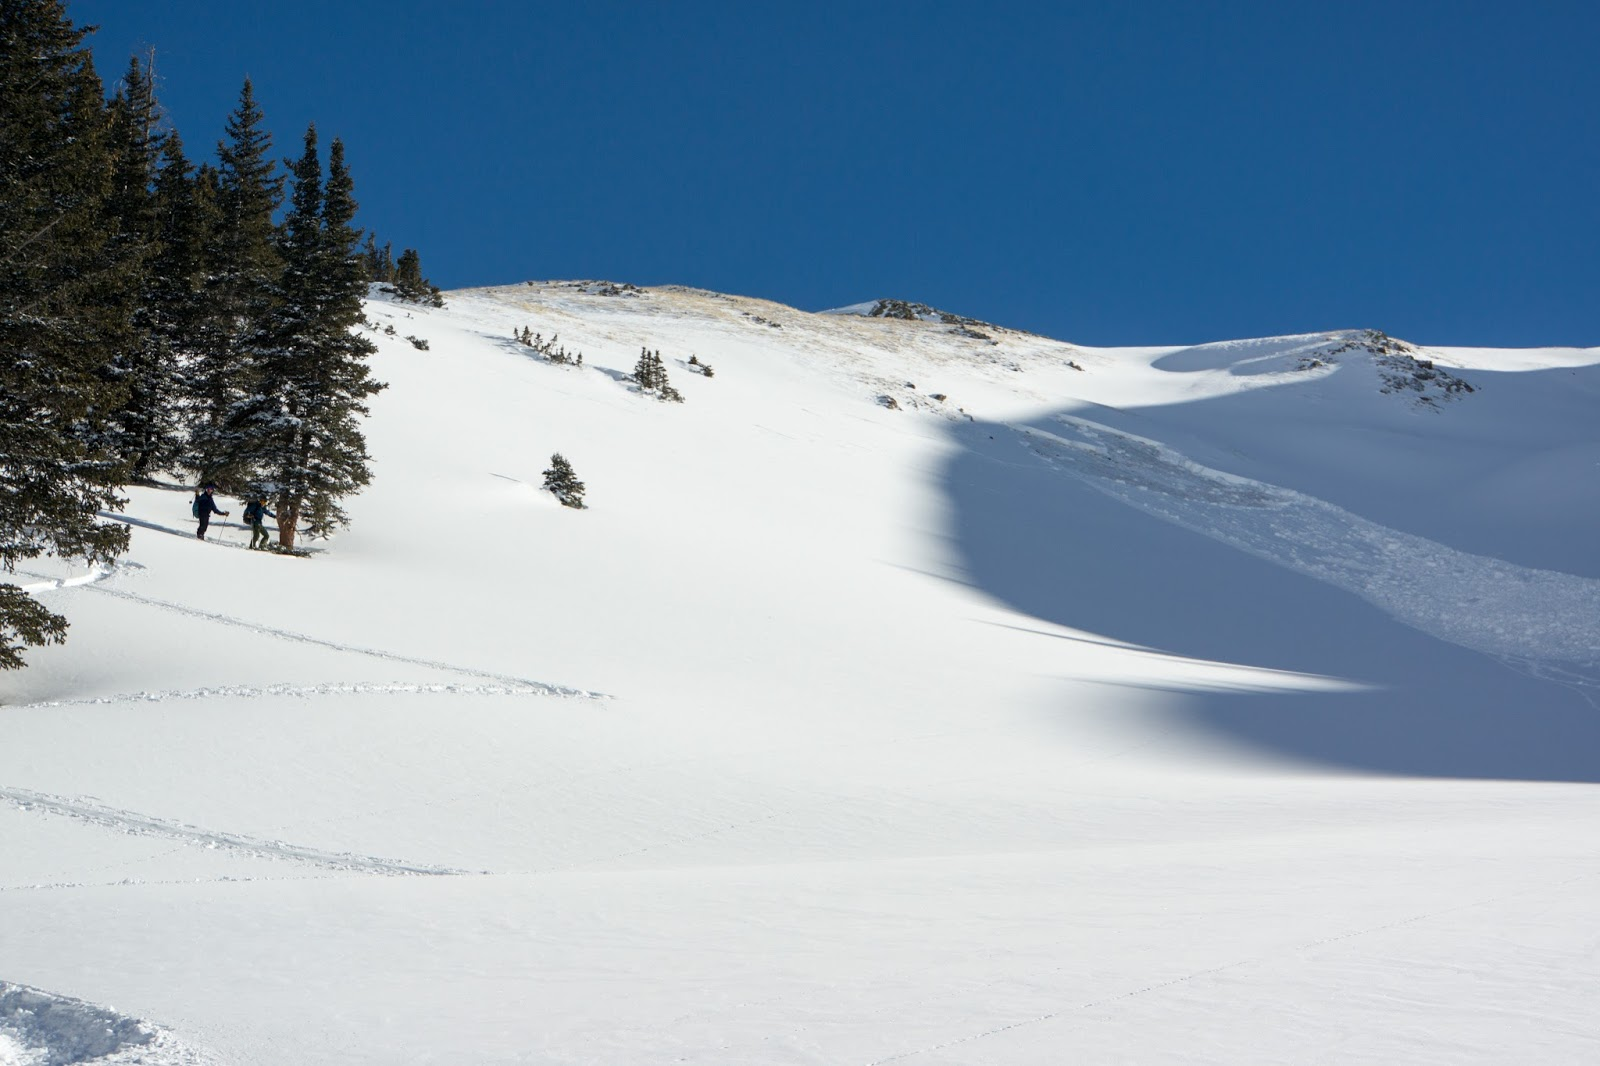 remote trigger of persistant slab avalanche triggered from 20 degree slope up to a 35 degree slope carry your slope meter and practice guessing slope